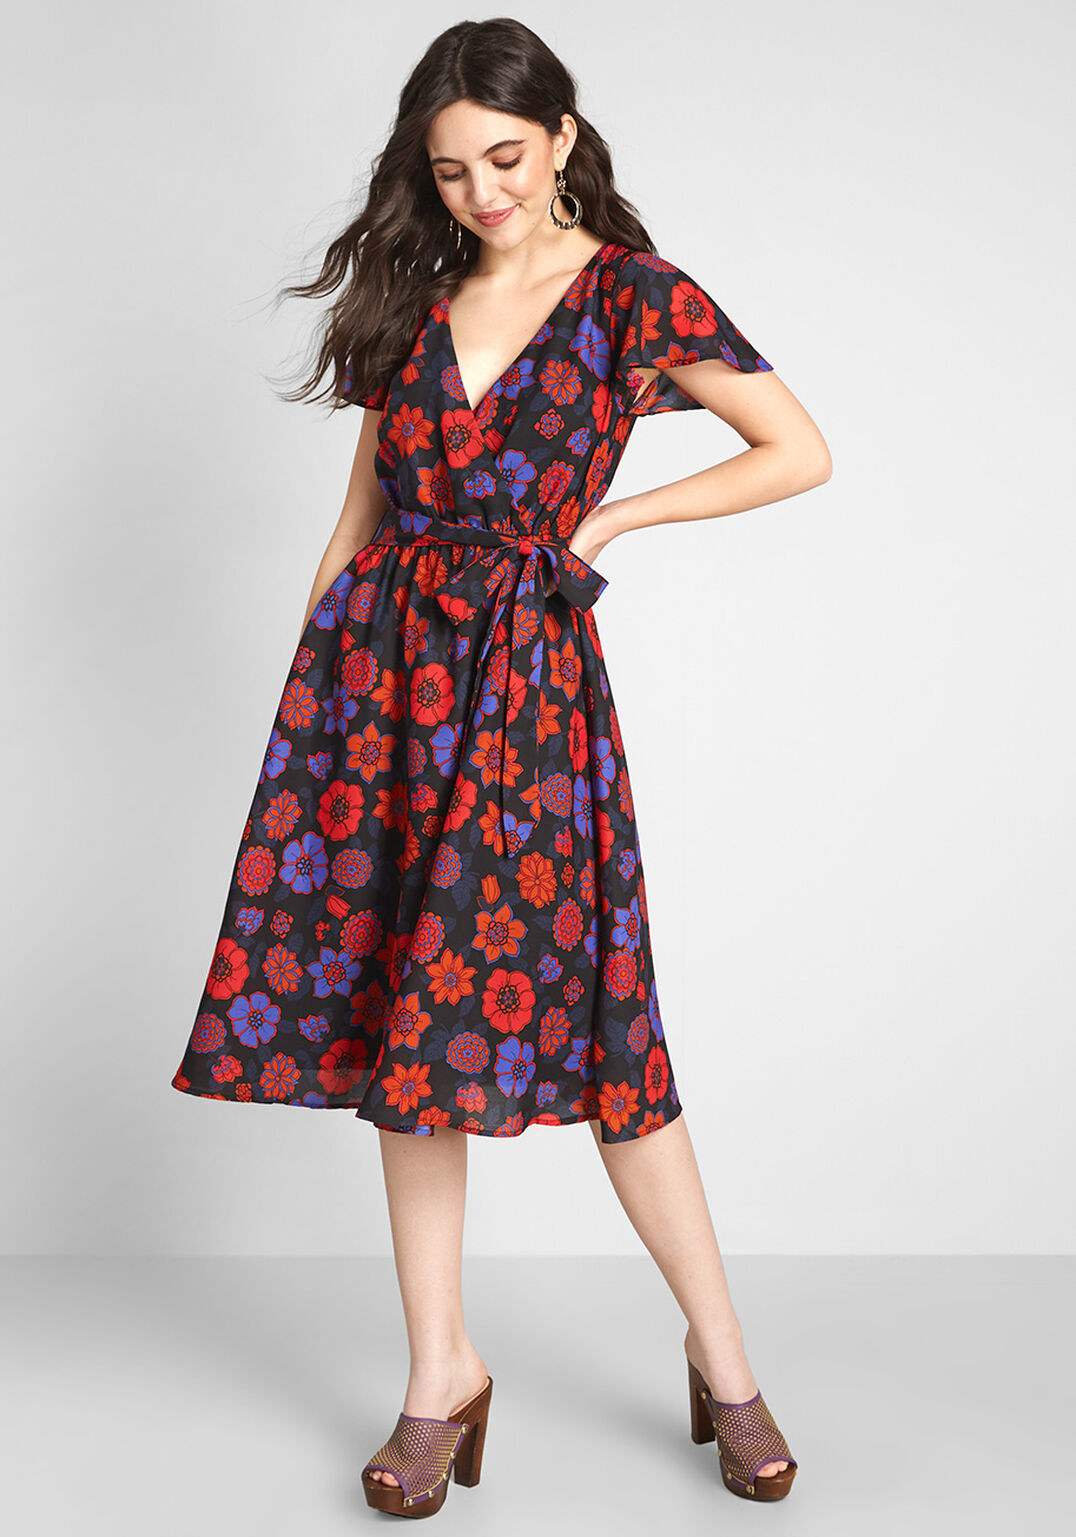 Model wearing the dress, printed with red, orange, and purple flowers